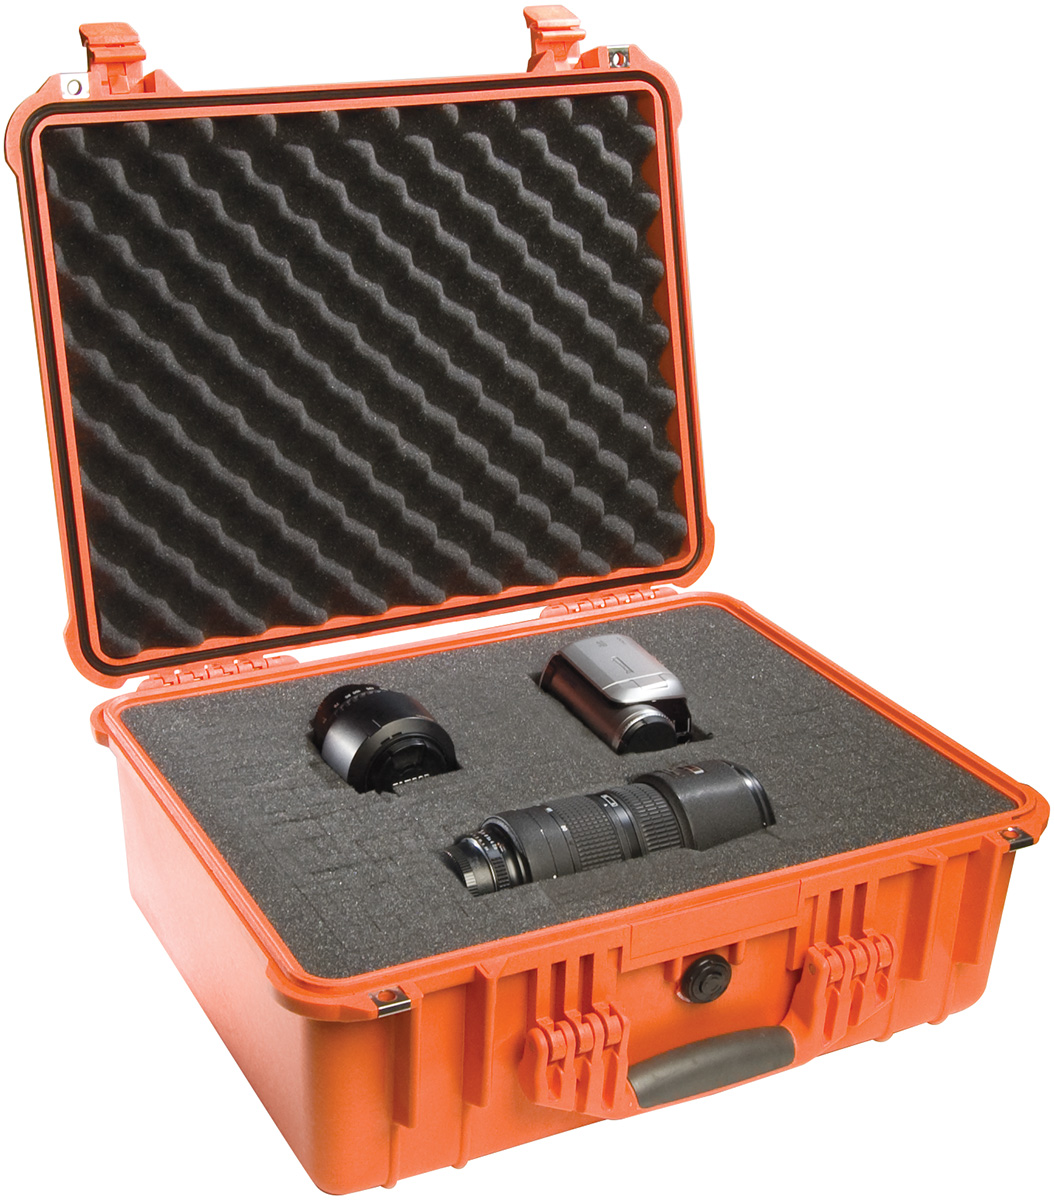 pelican peli products 1550 orange hard waterproof camera case